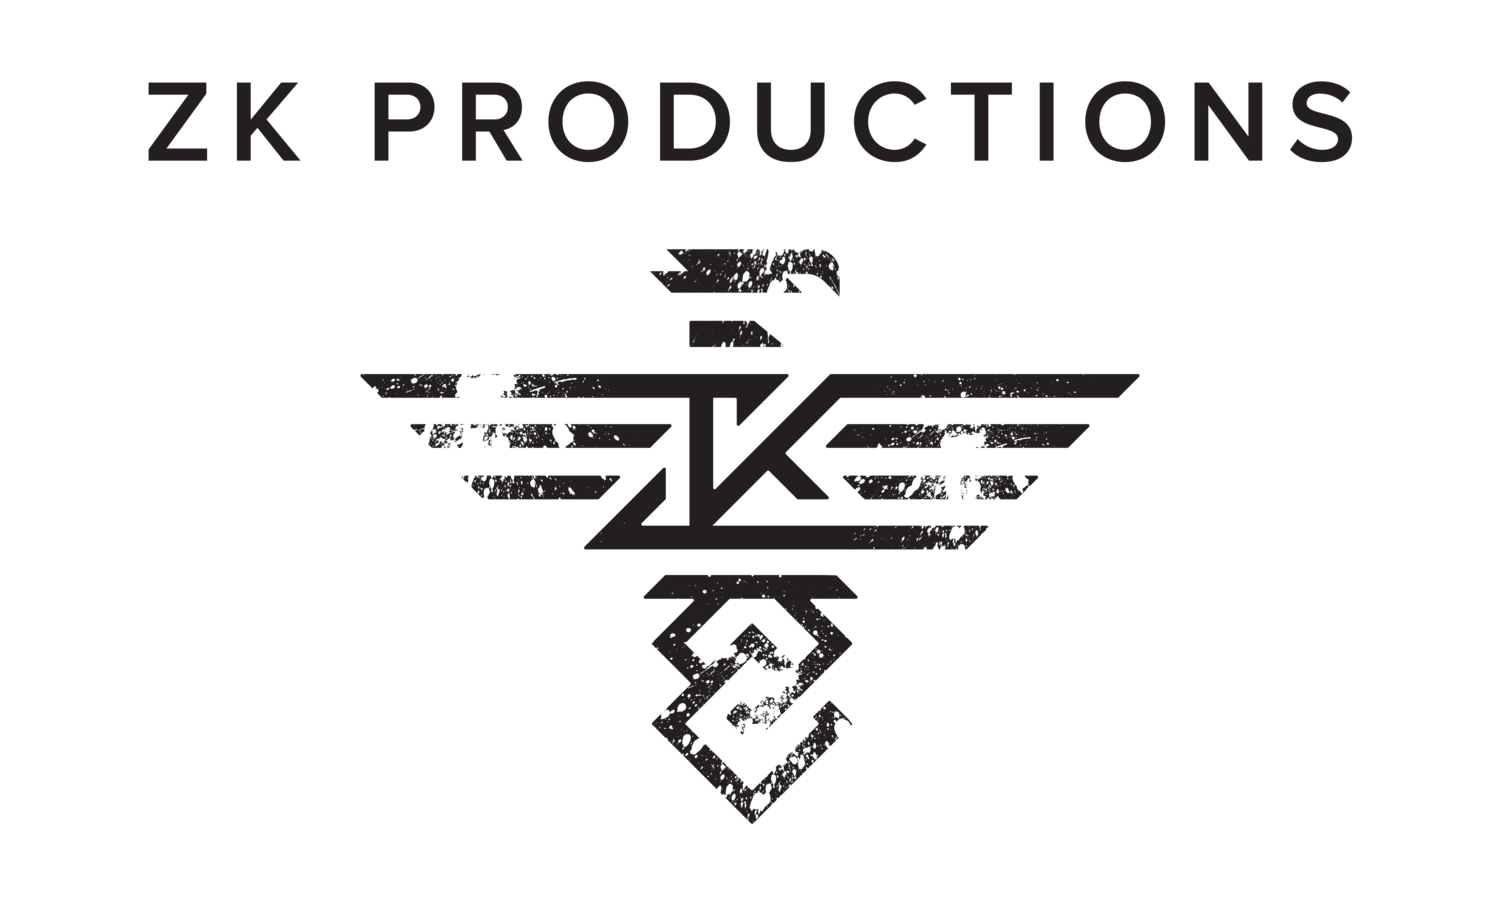 ZK Productions